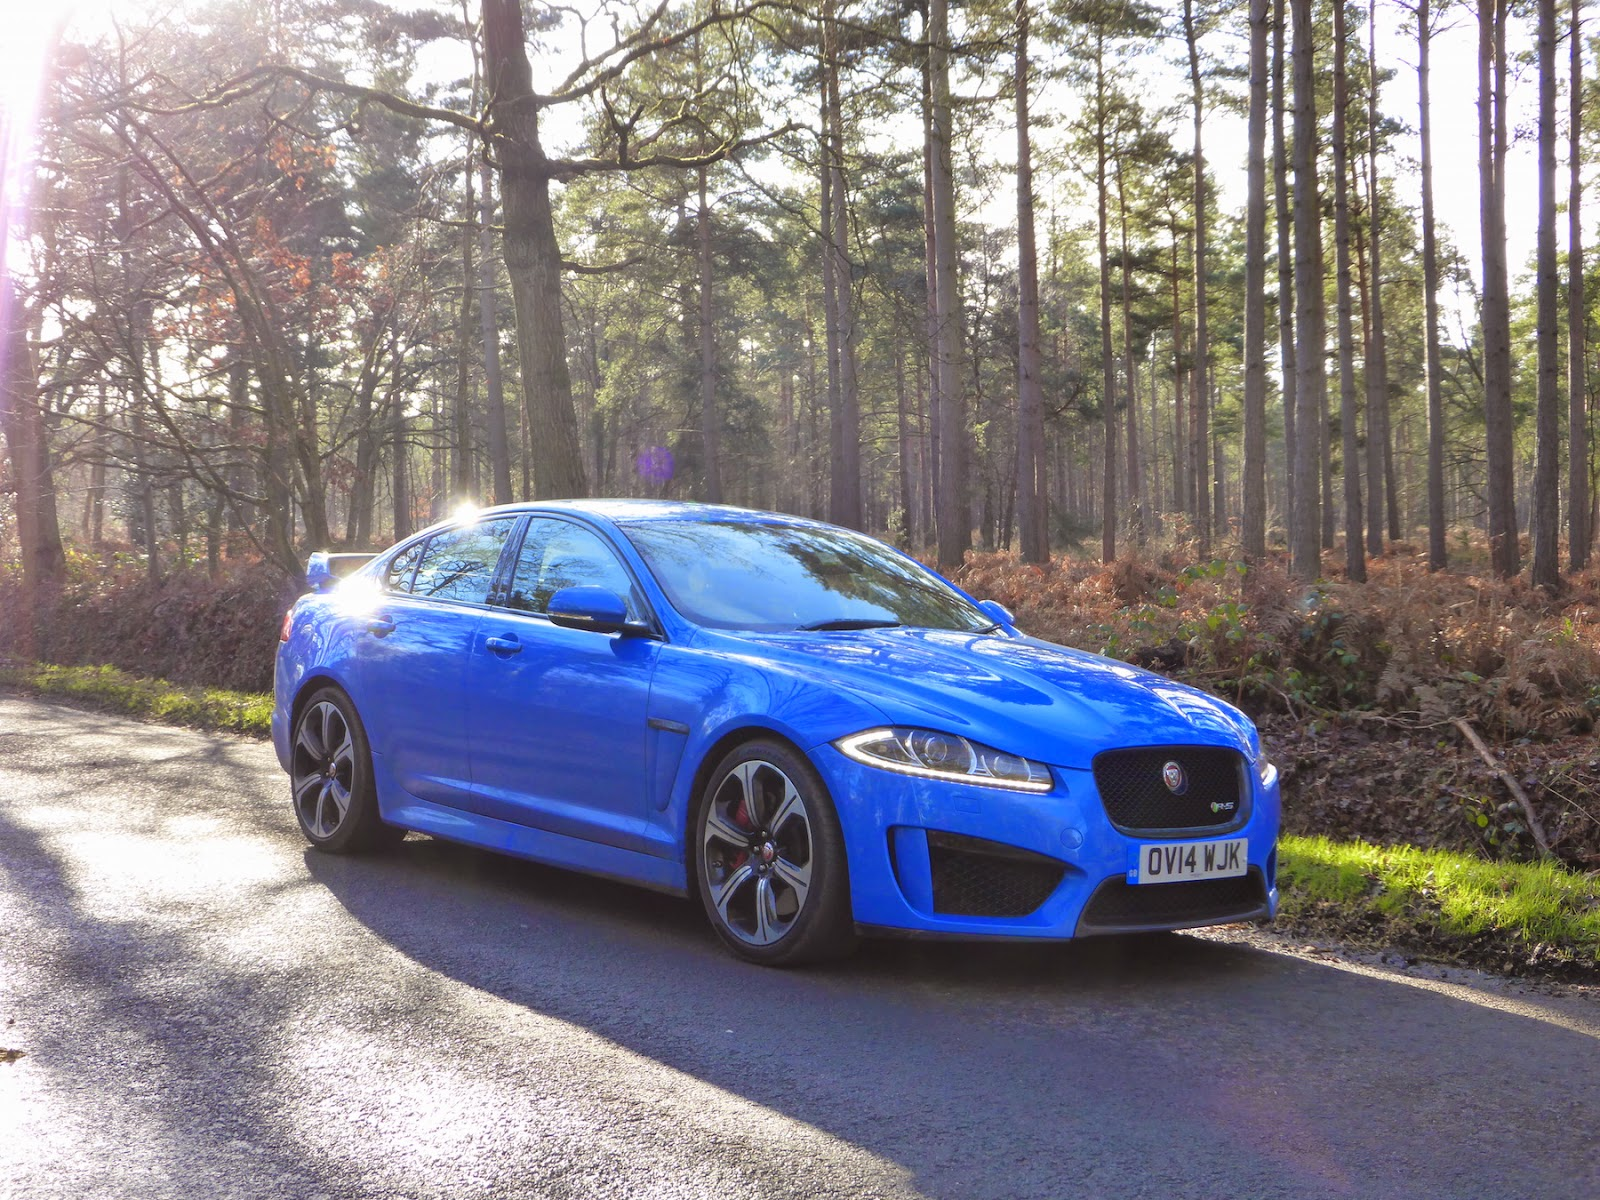 2015 jaguar xfr s review the crittenden automotive library. Black Bedroom Furniture Sets. Home Design Ideas